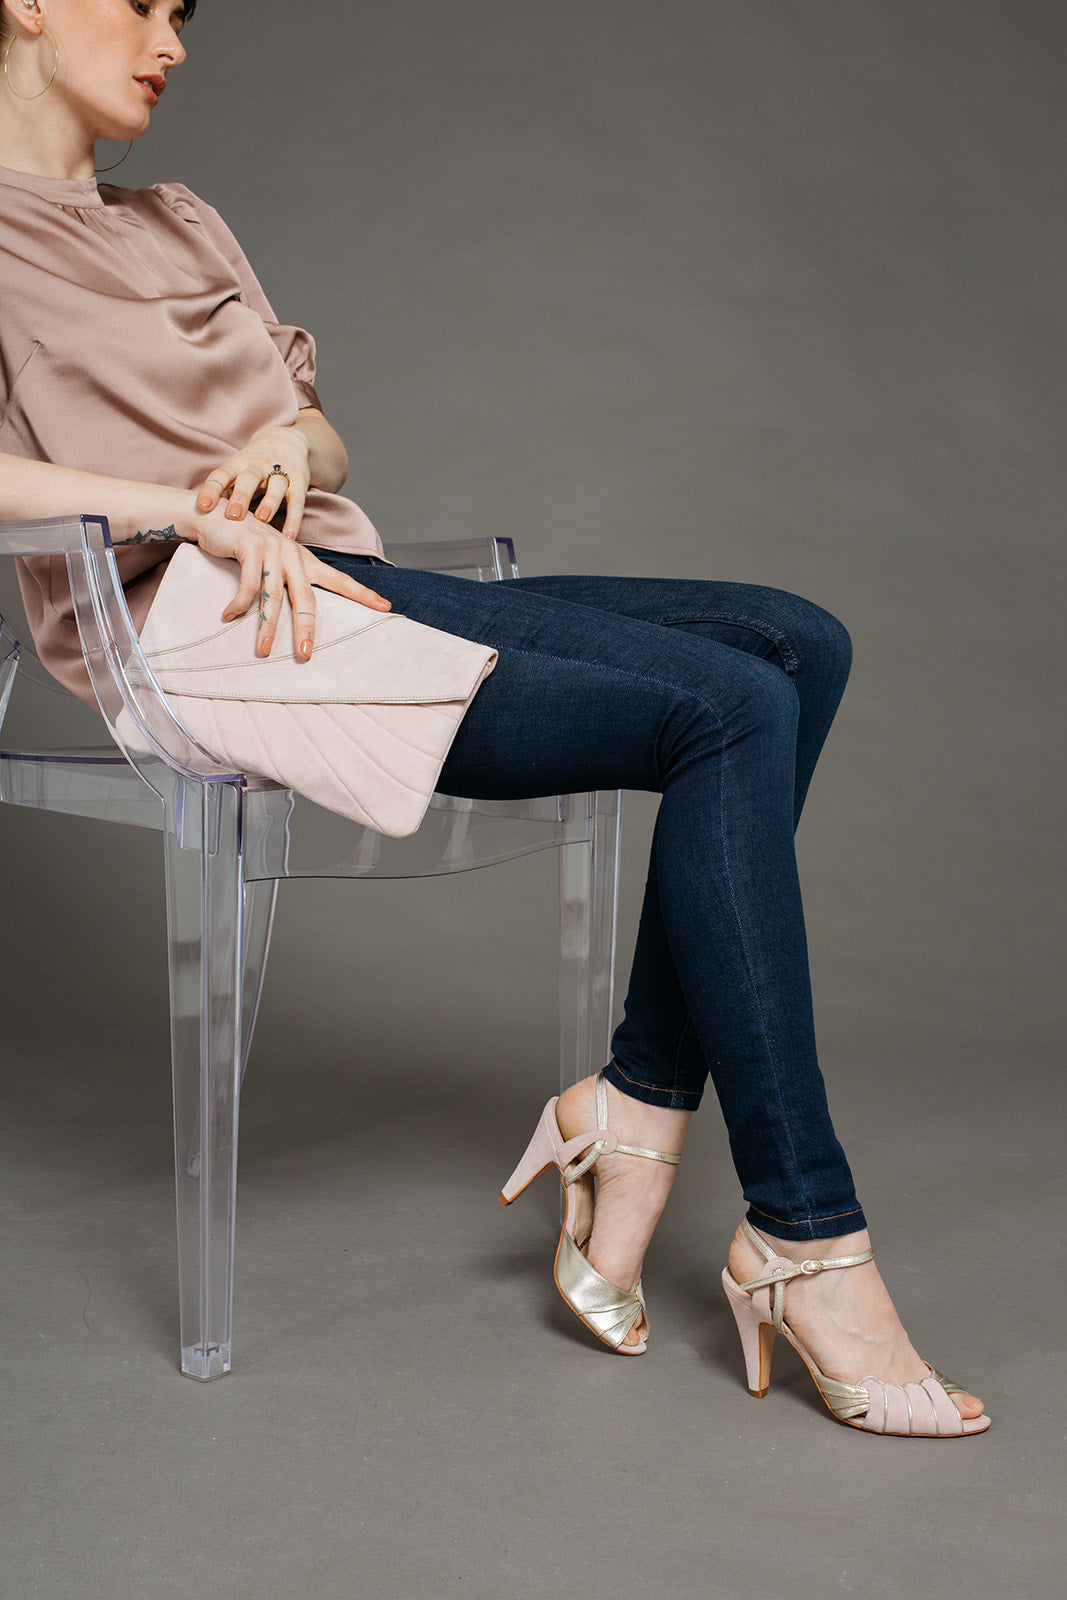 Rachel Simpson Aurelia blush pink shoes and matching bag